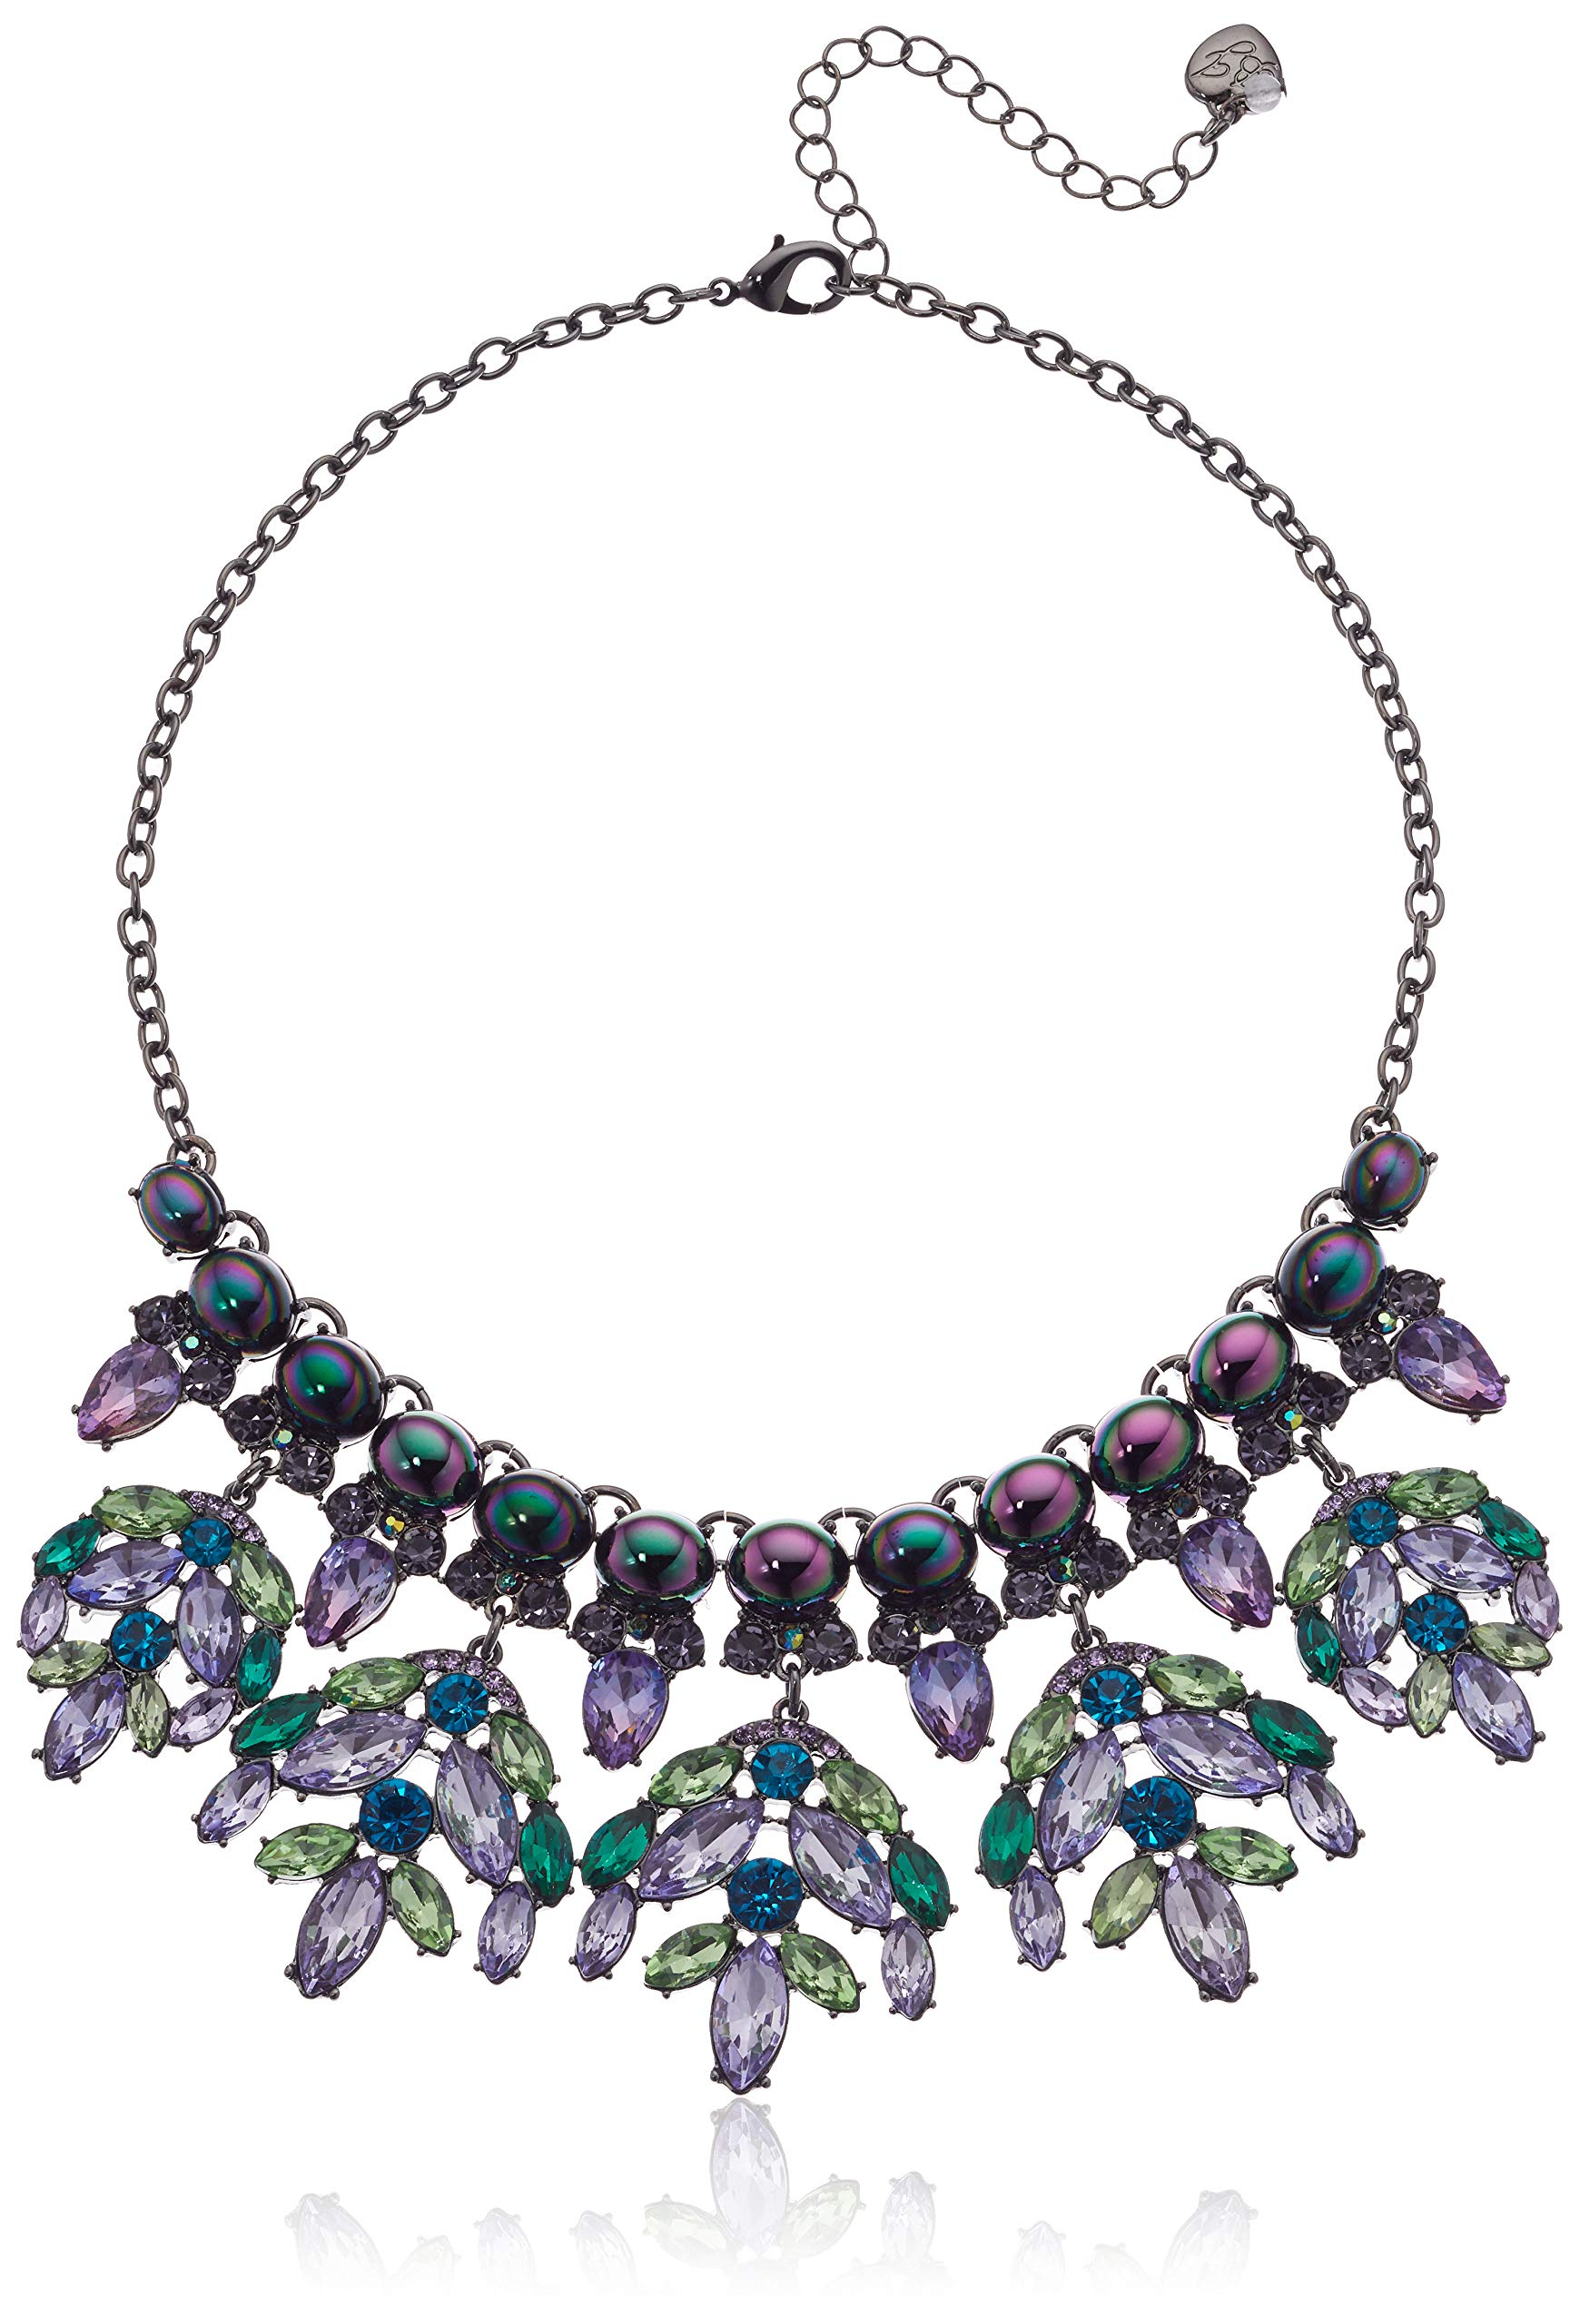 Betsey Johnson (GBG) Women's Mixed Stone Cluster Frontal Strand Necklace, Peacock Dark Multi, One Size